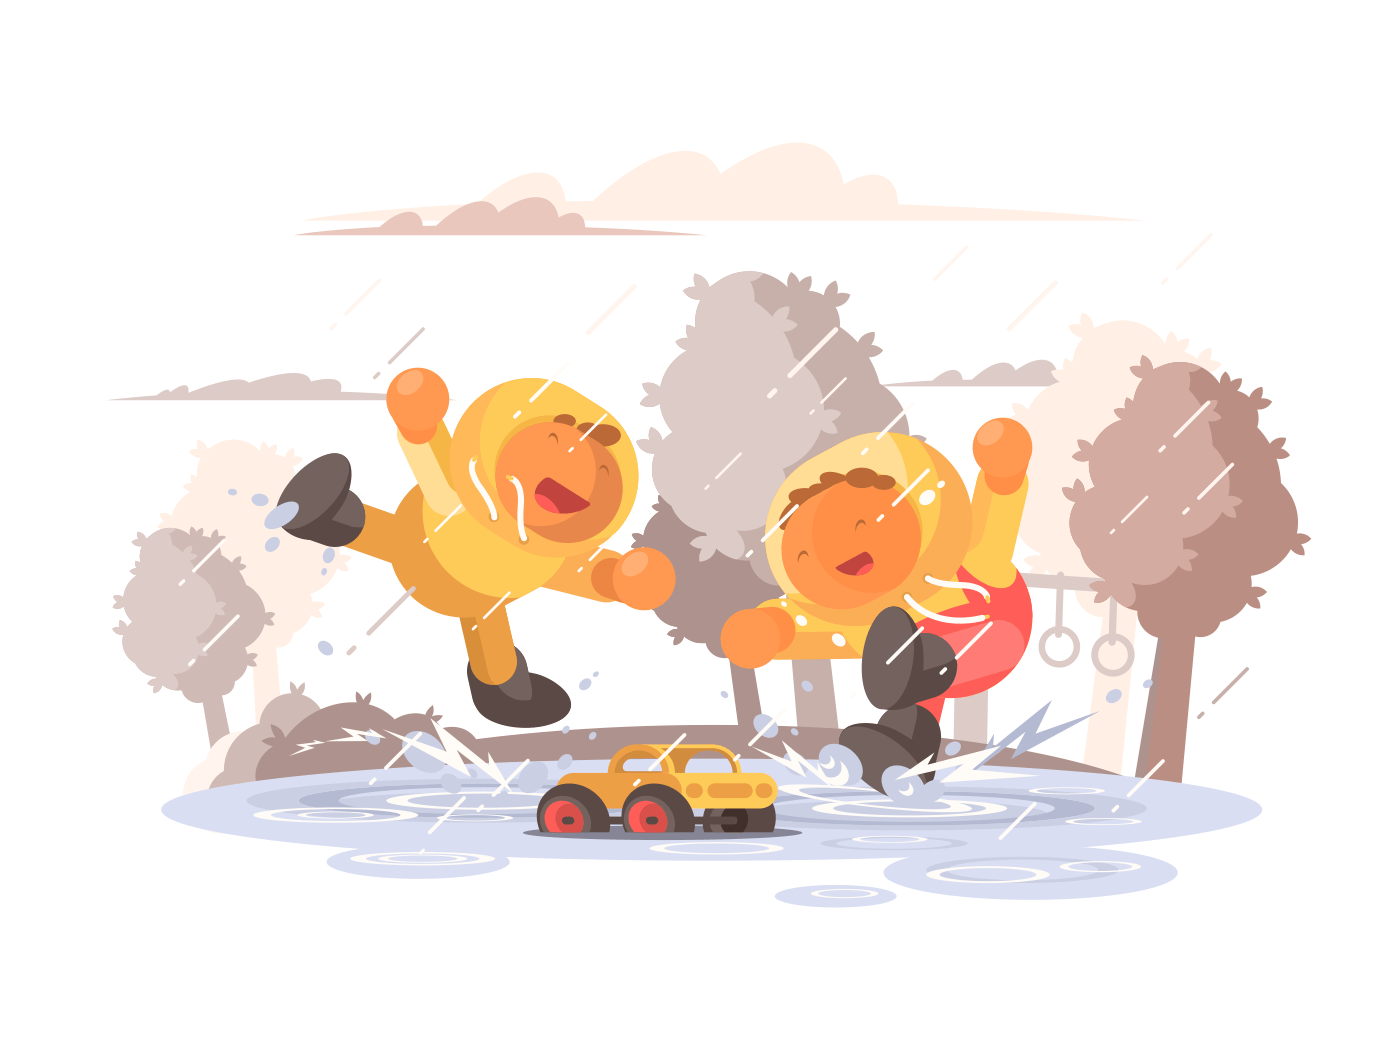 Happy children jumping in puddle illustration